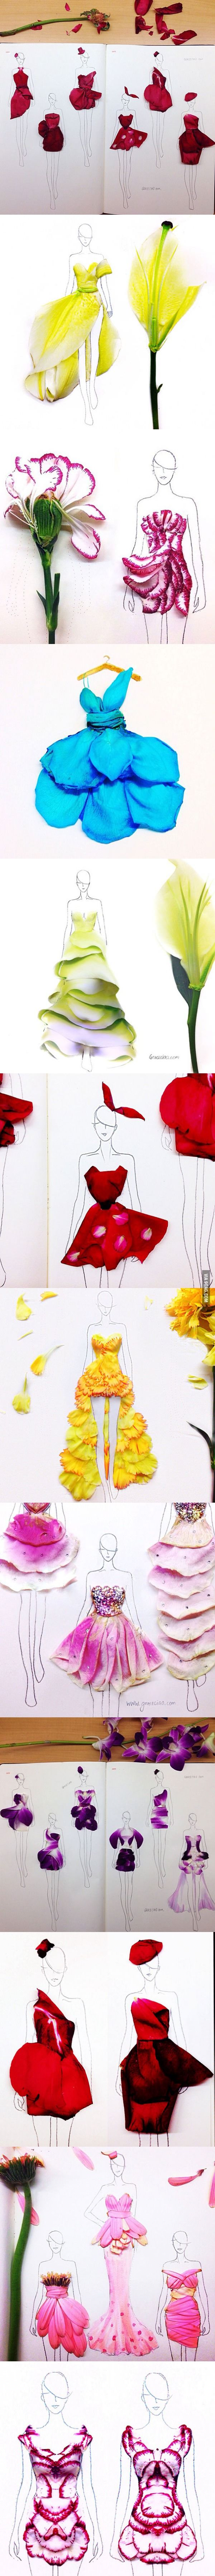 This reminds me of some sort of brainstorming for a Project Runway challenge. I LOVE THIS, inspired by flowers Couture.